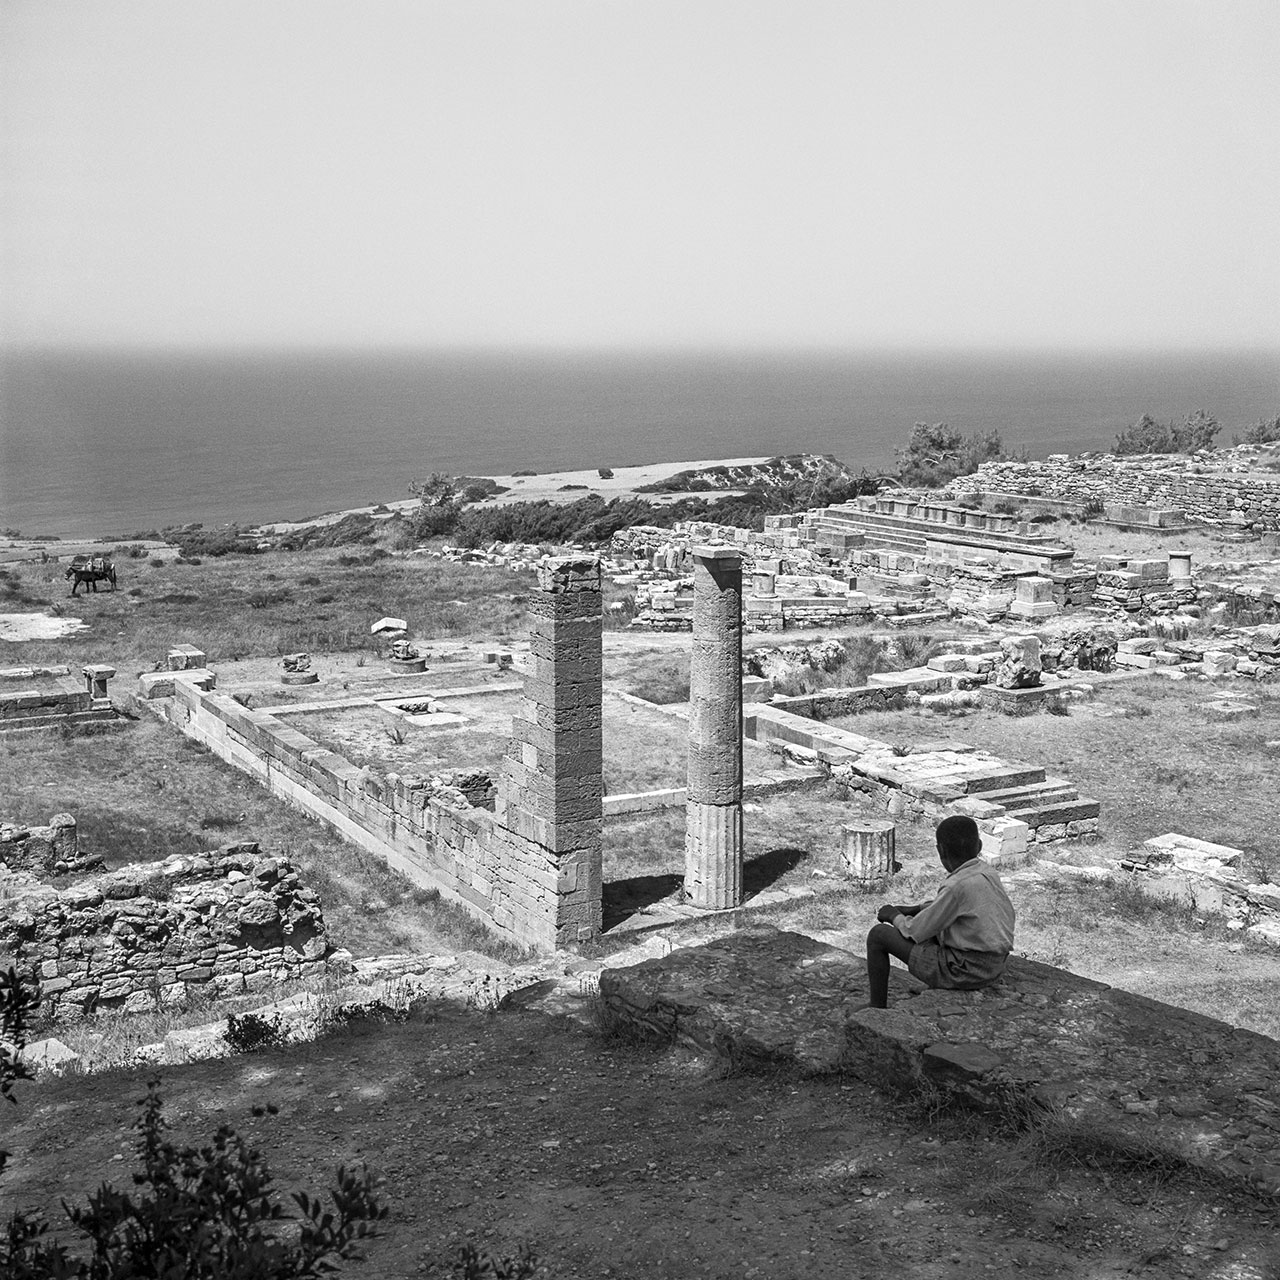 Kamiros, Rhodes 1954. Photo © Robert McCabe.